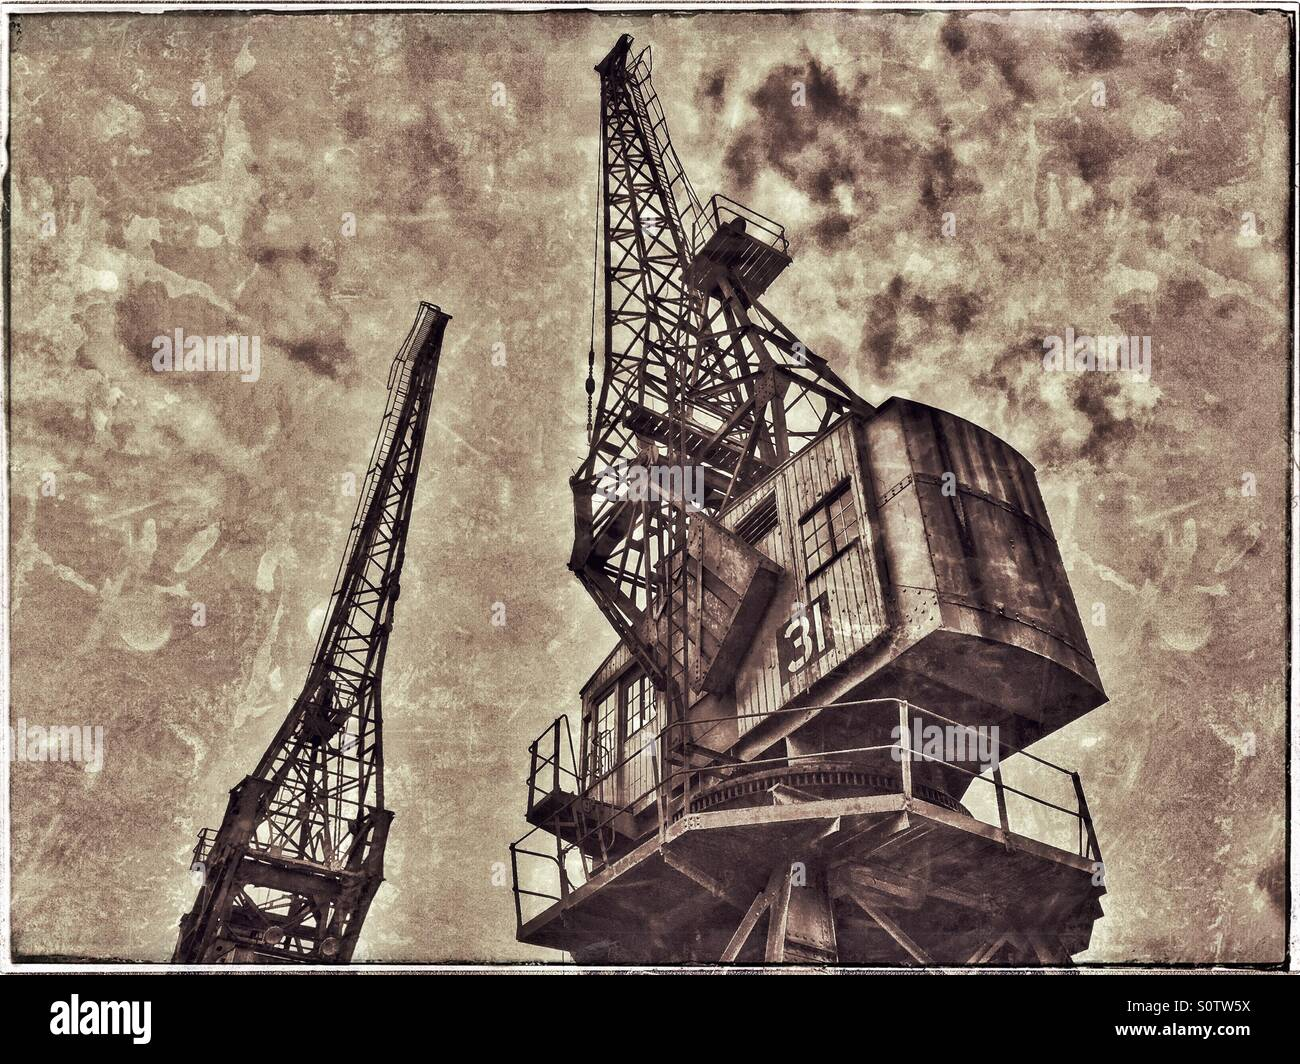 Two of the Cranes situated on the edge of The Floating Harbour in Bristol, England. A Grunge Effect Picture to Illustrate - Stock Image